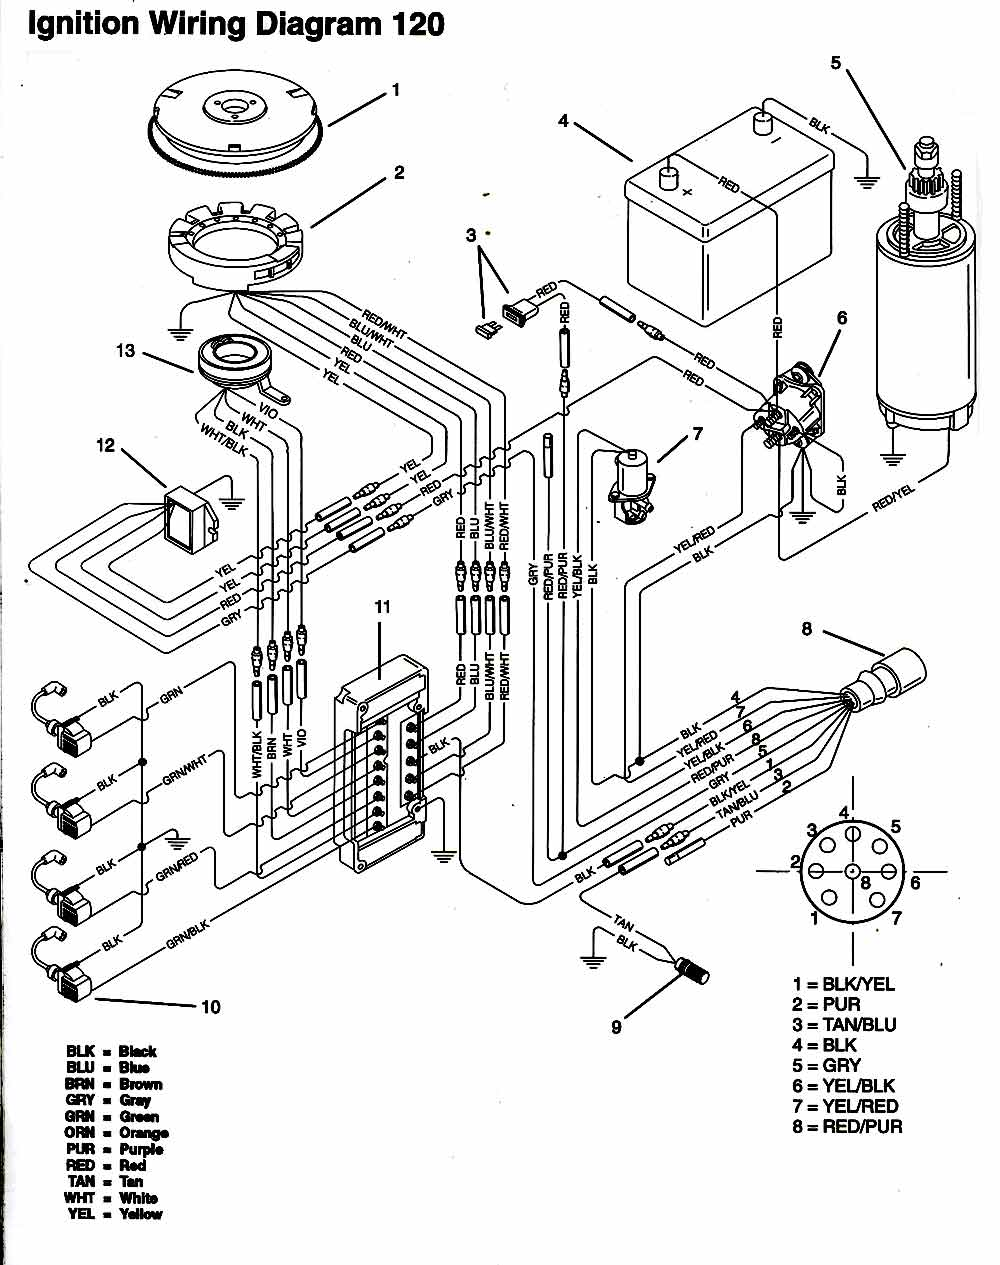 hp mercury outboard wiring diagram canmakT 2005 mercury mariner wiring diagram tractor repair with wiring,Wiring Diagram For 2005 Mercury Monterey